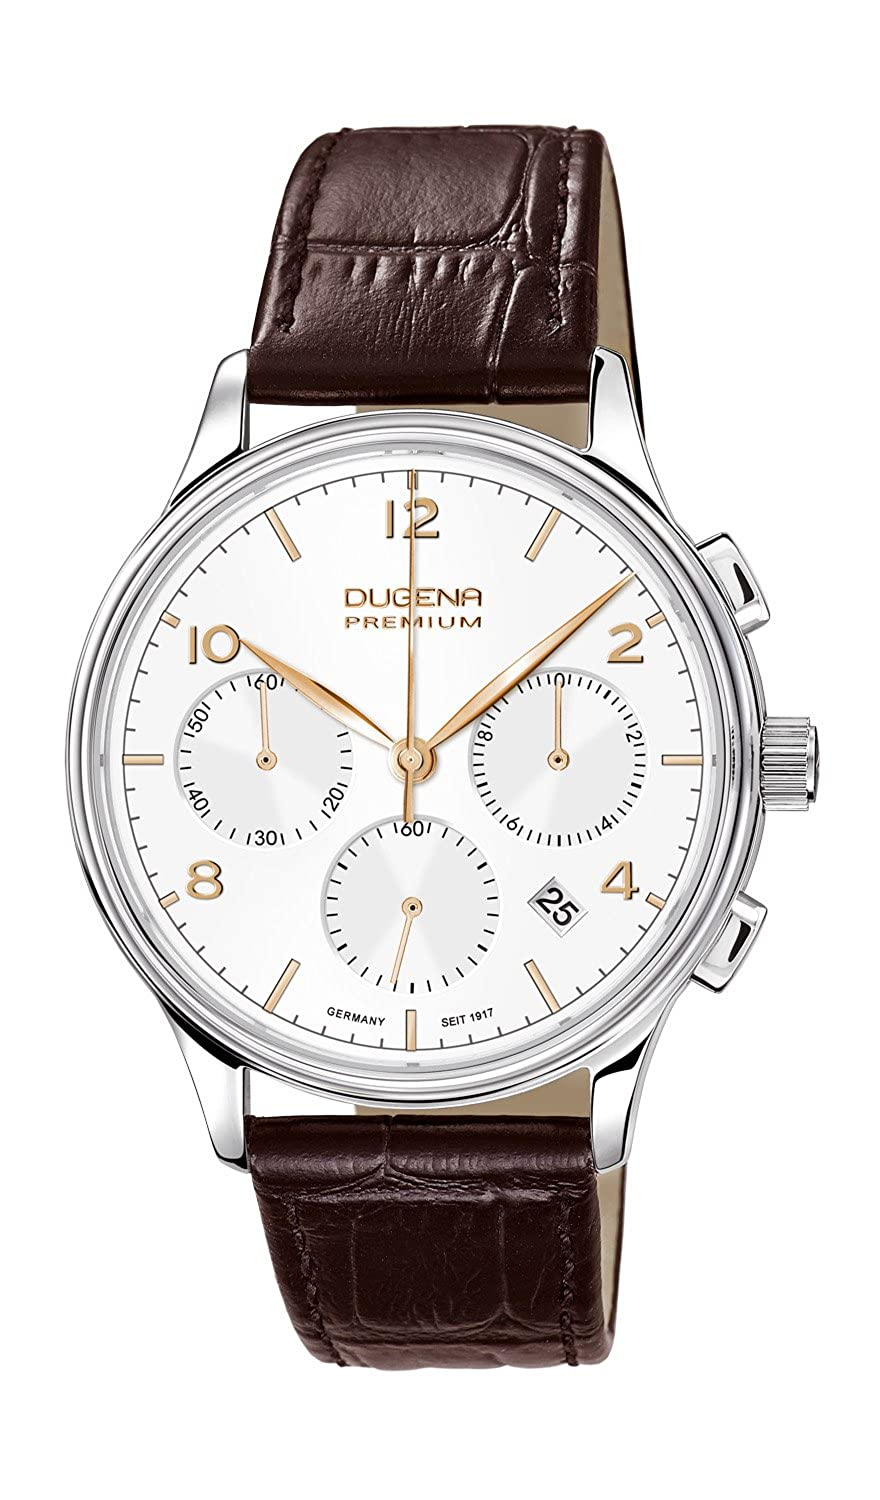 Herren Traditional Armbanduhr Chronograph Leder 7000242 Analog Classic Quarz Dugena Minor qc35LSRj4A